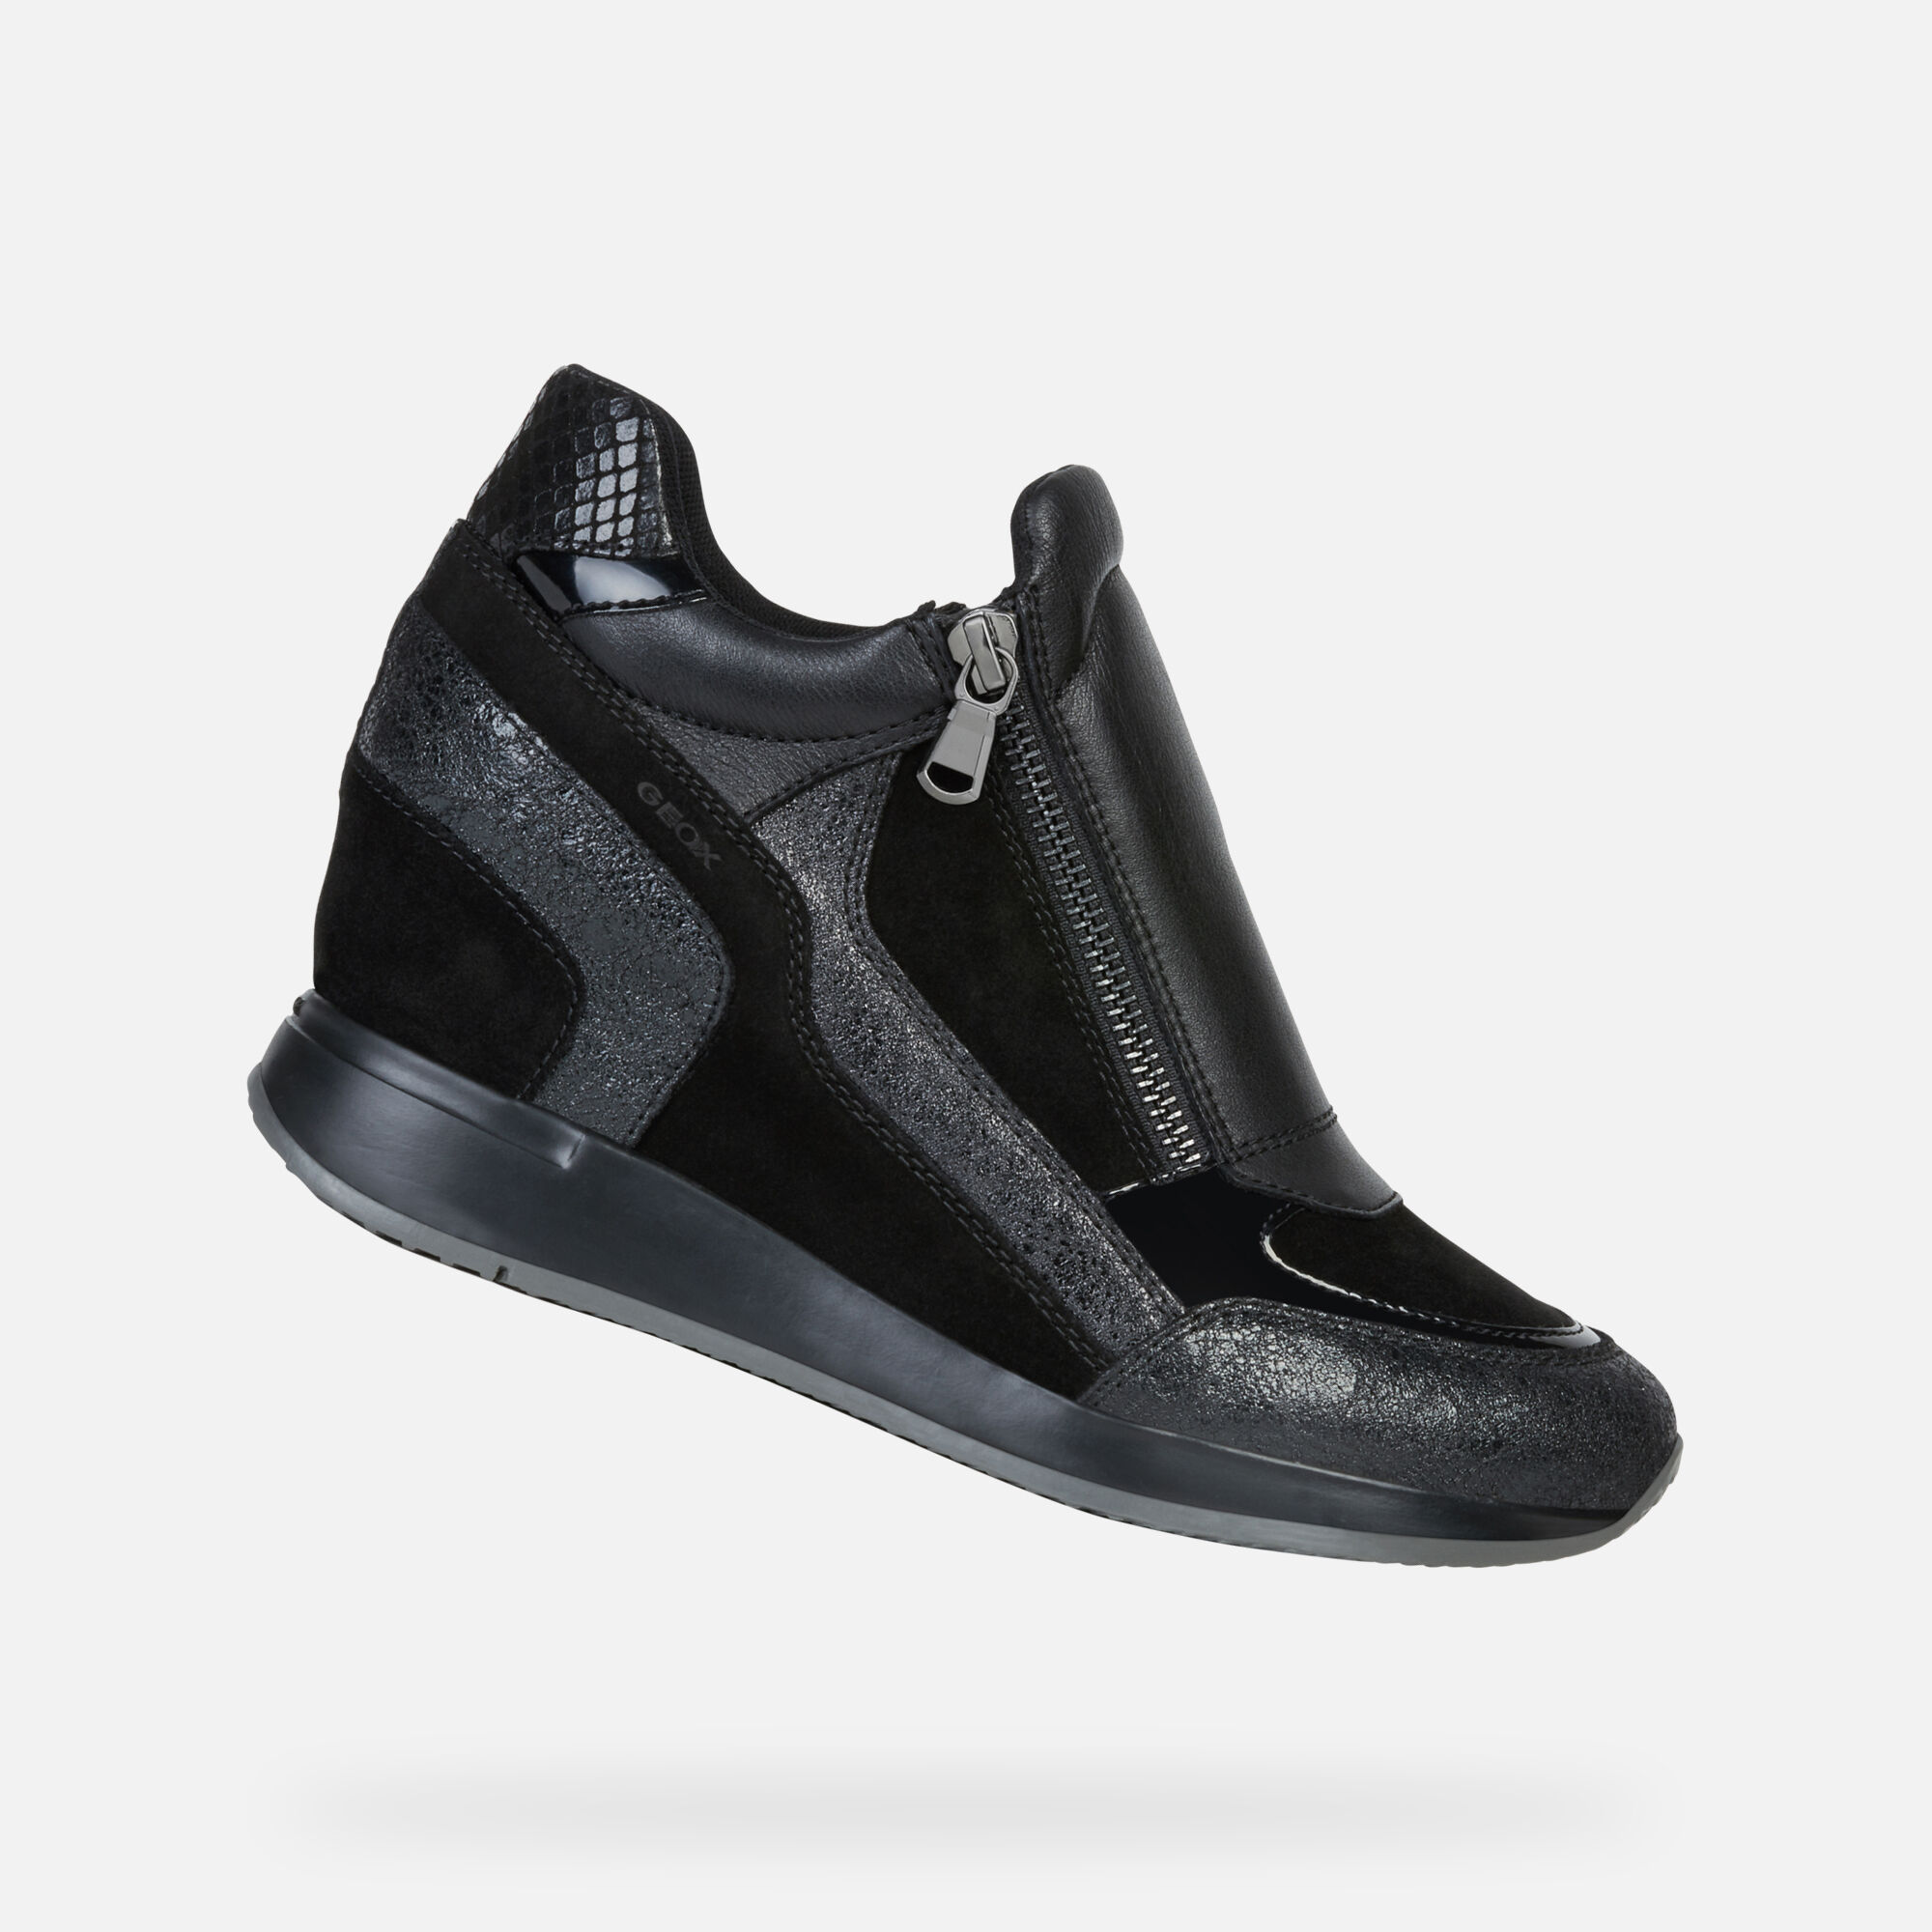 Geox NYDAME Femme Sneakers Noires | Collection d'Automne Hiver